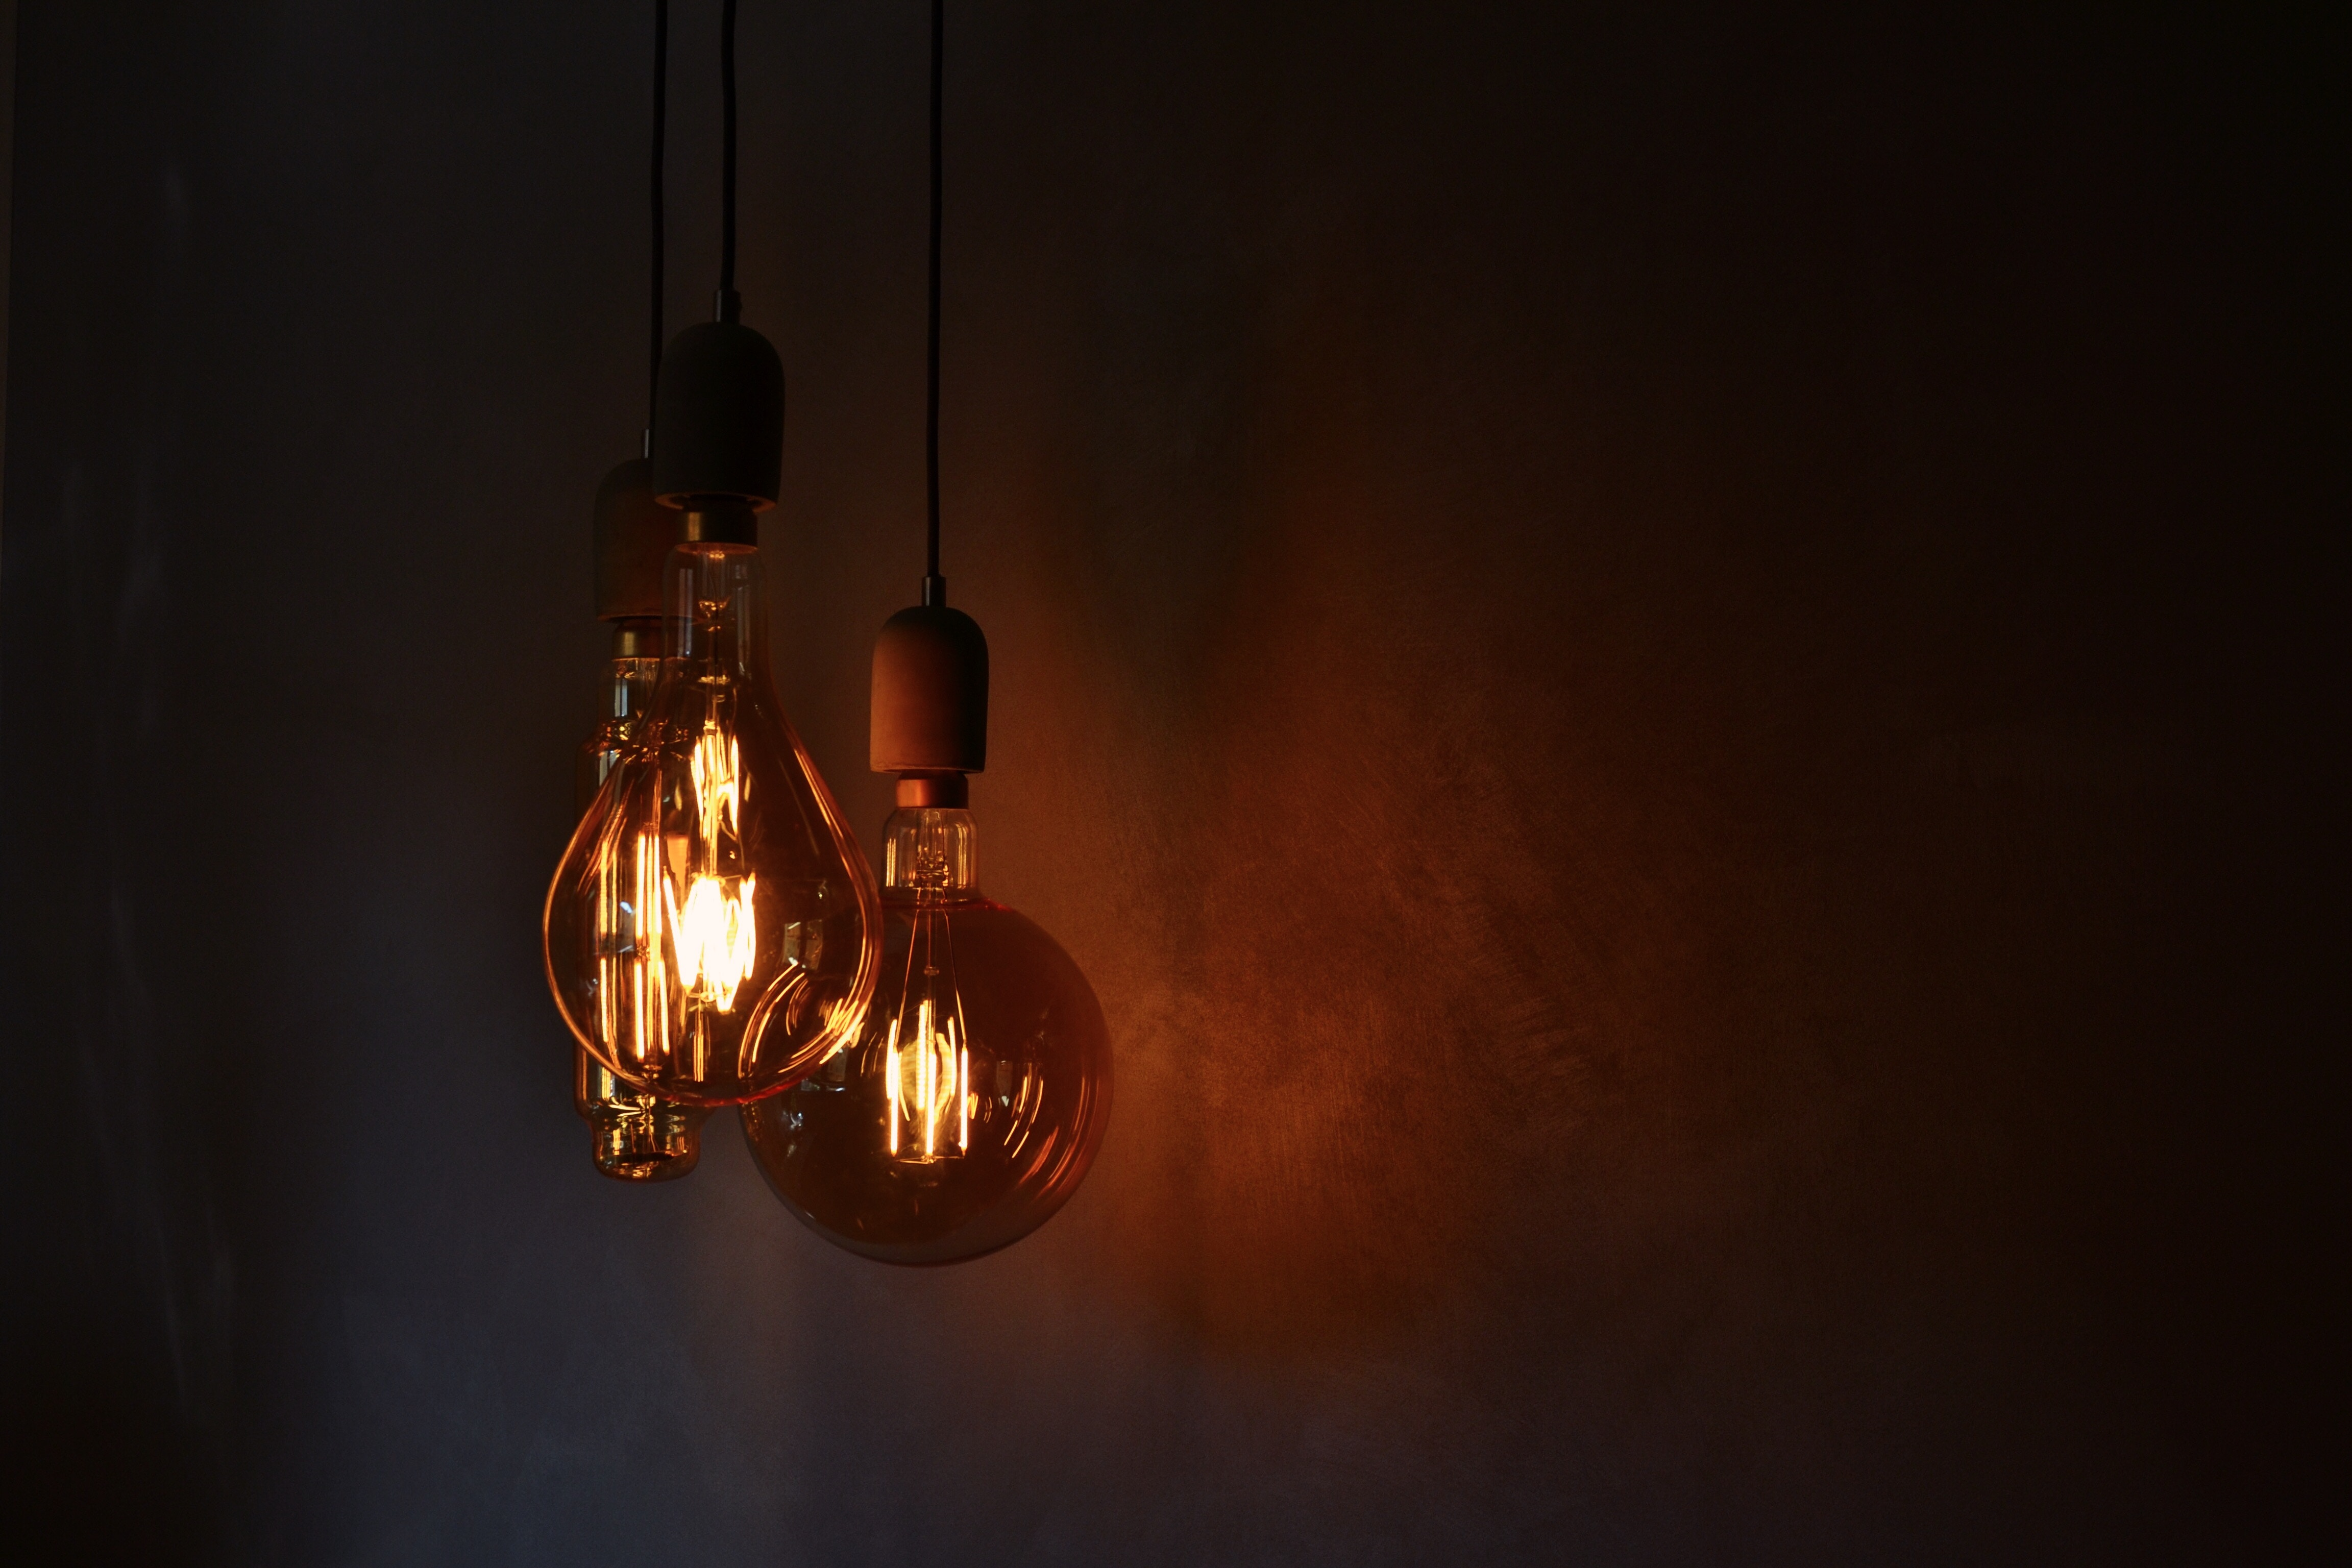 101745 download wallpaper Wall, Miscellanea, Miscellaneous, Illumination, Lighting, Electricity, Light Bulbs screensavers and pictures for free